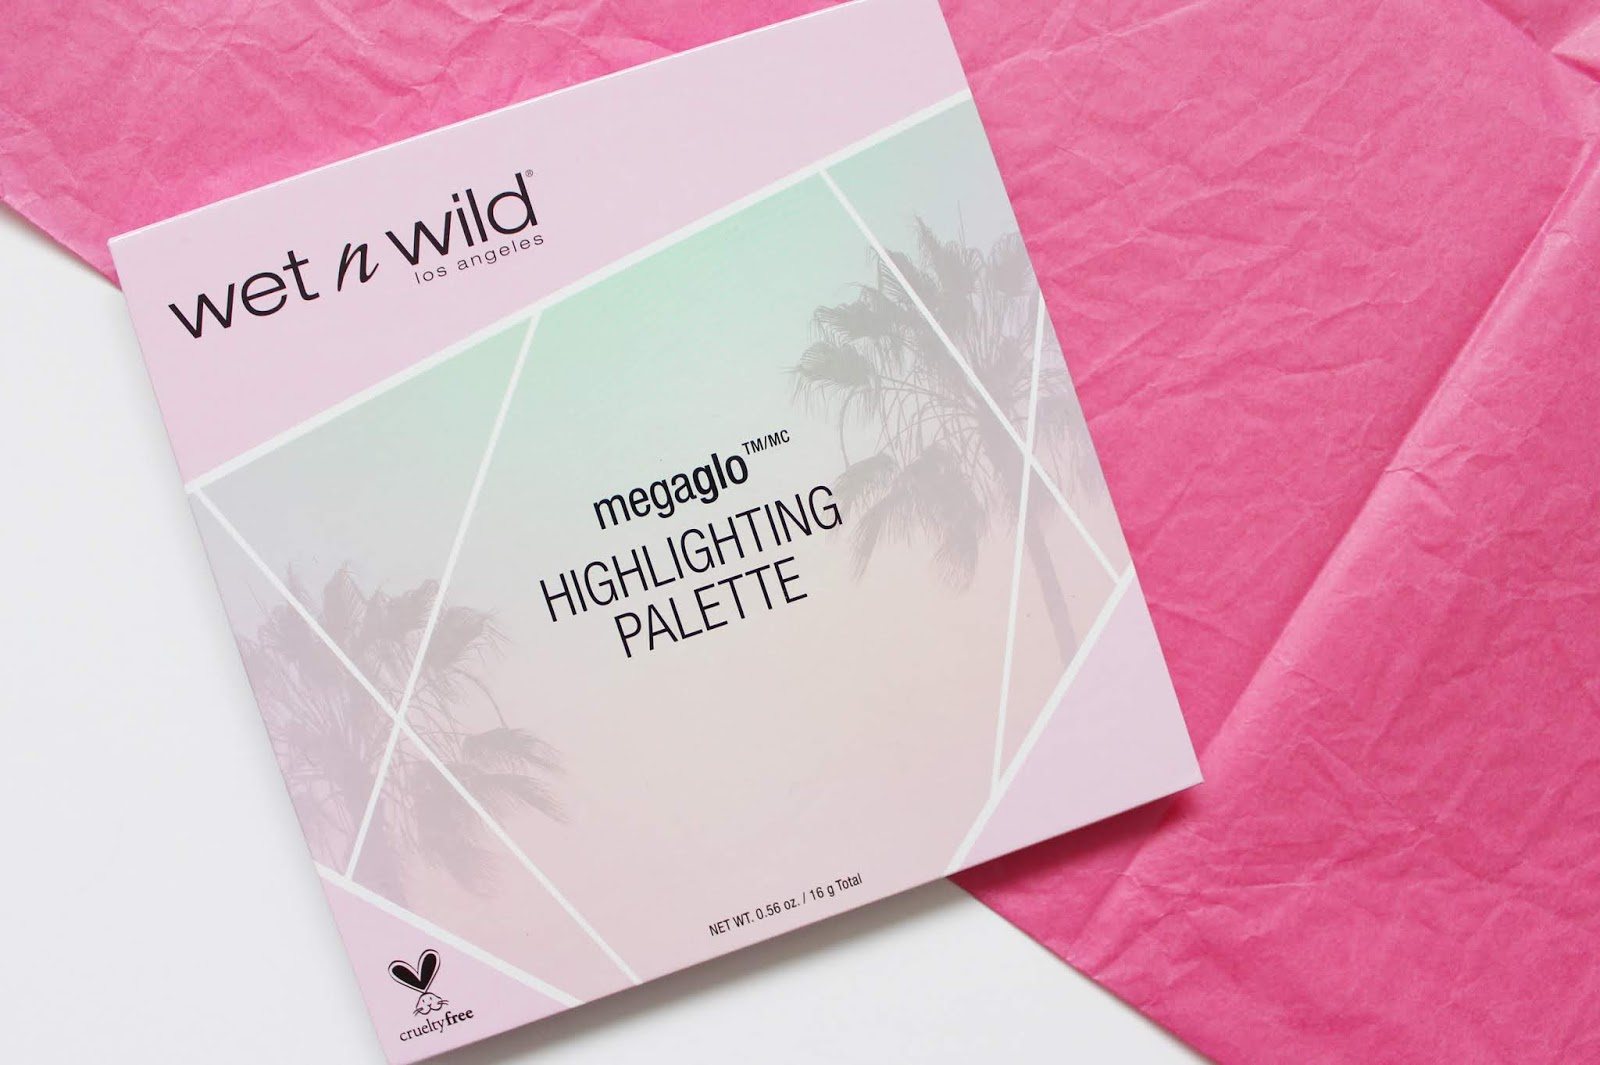 WET N WILD | Christmas Collection MegaGlo Highlighting Palette - Review + Swatches - CassandraMyee